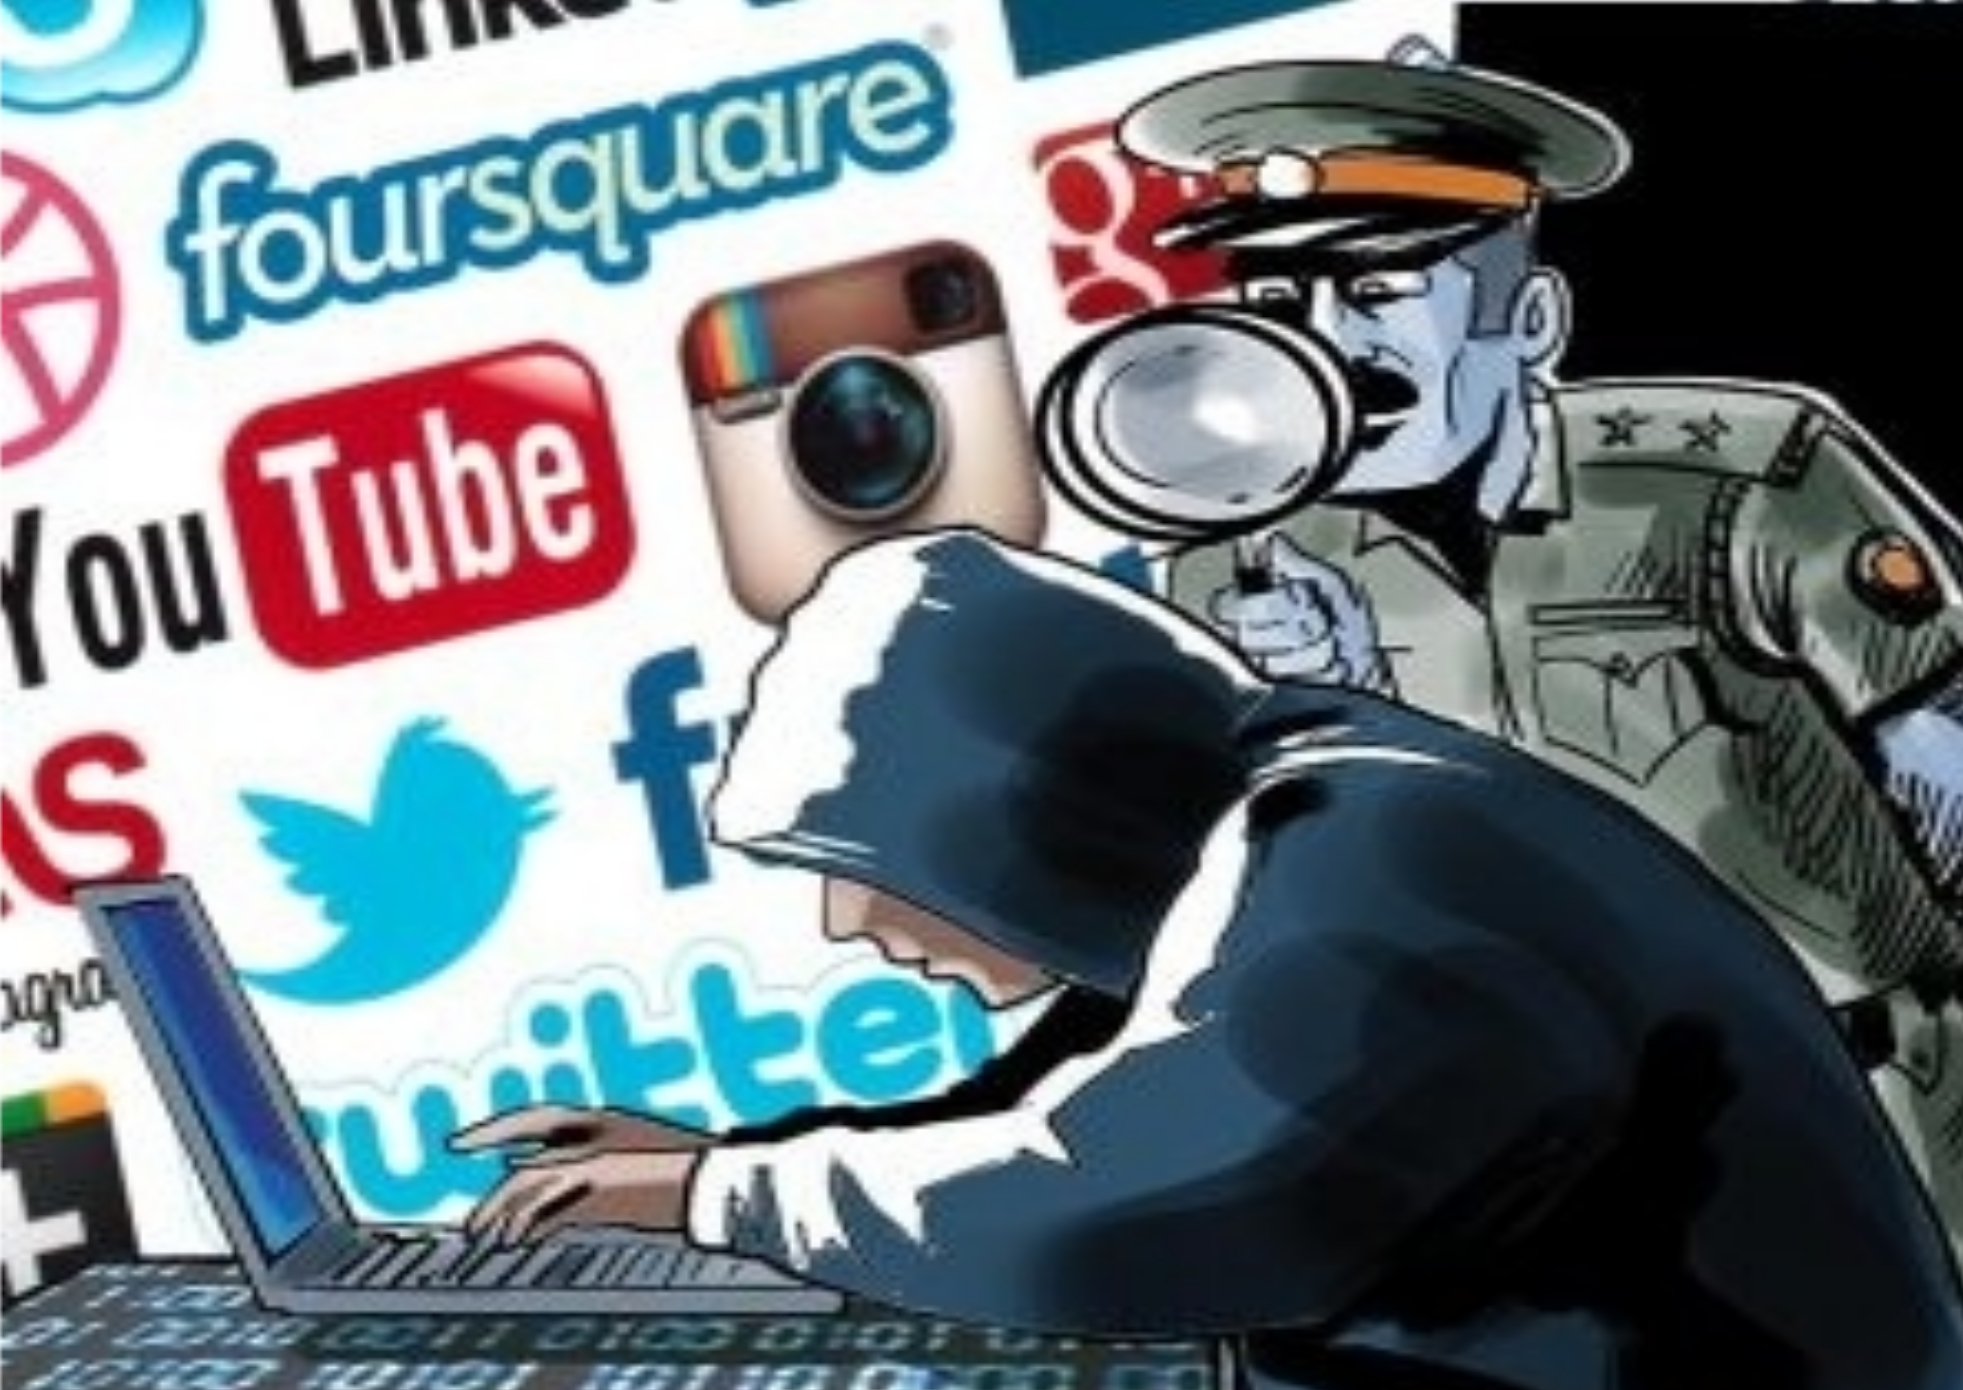 Cyber patrol unit in State soon to Monitor 'Offensive' Posts on Social Media